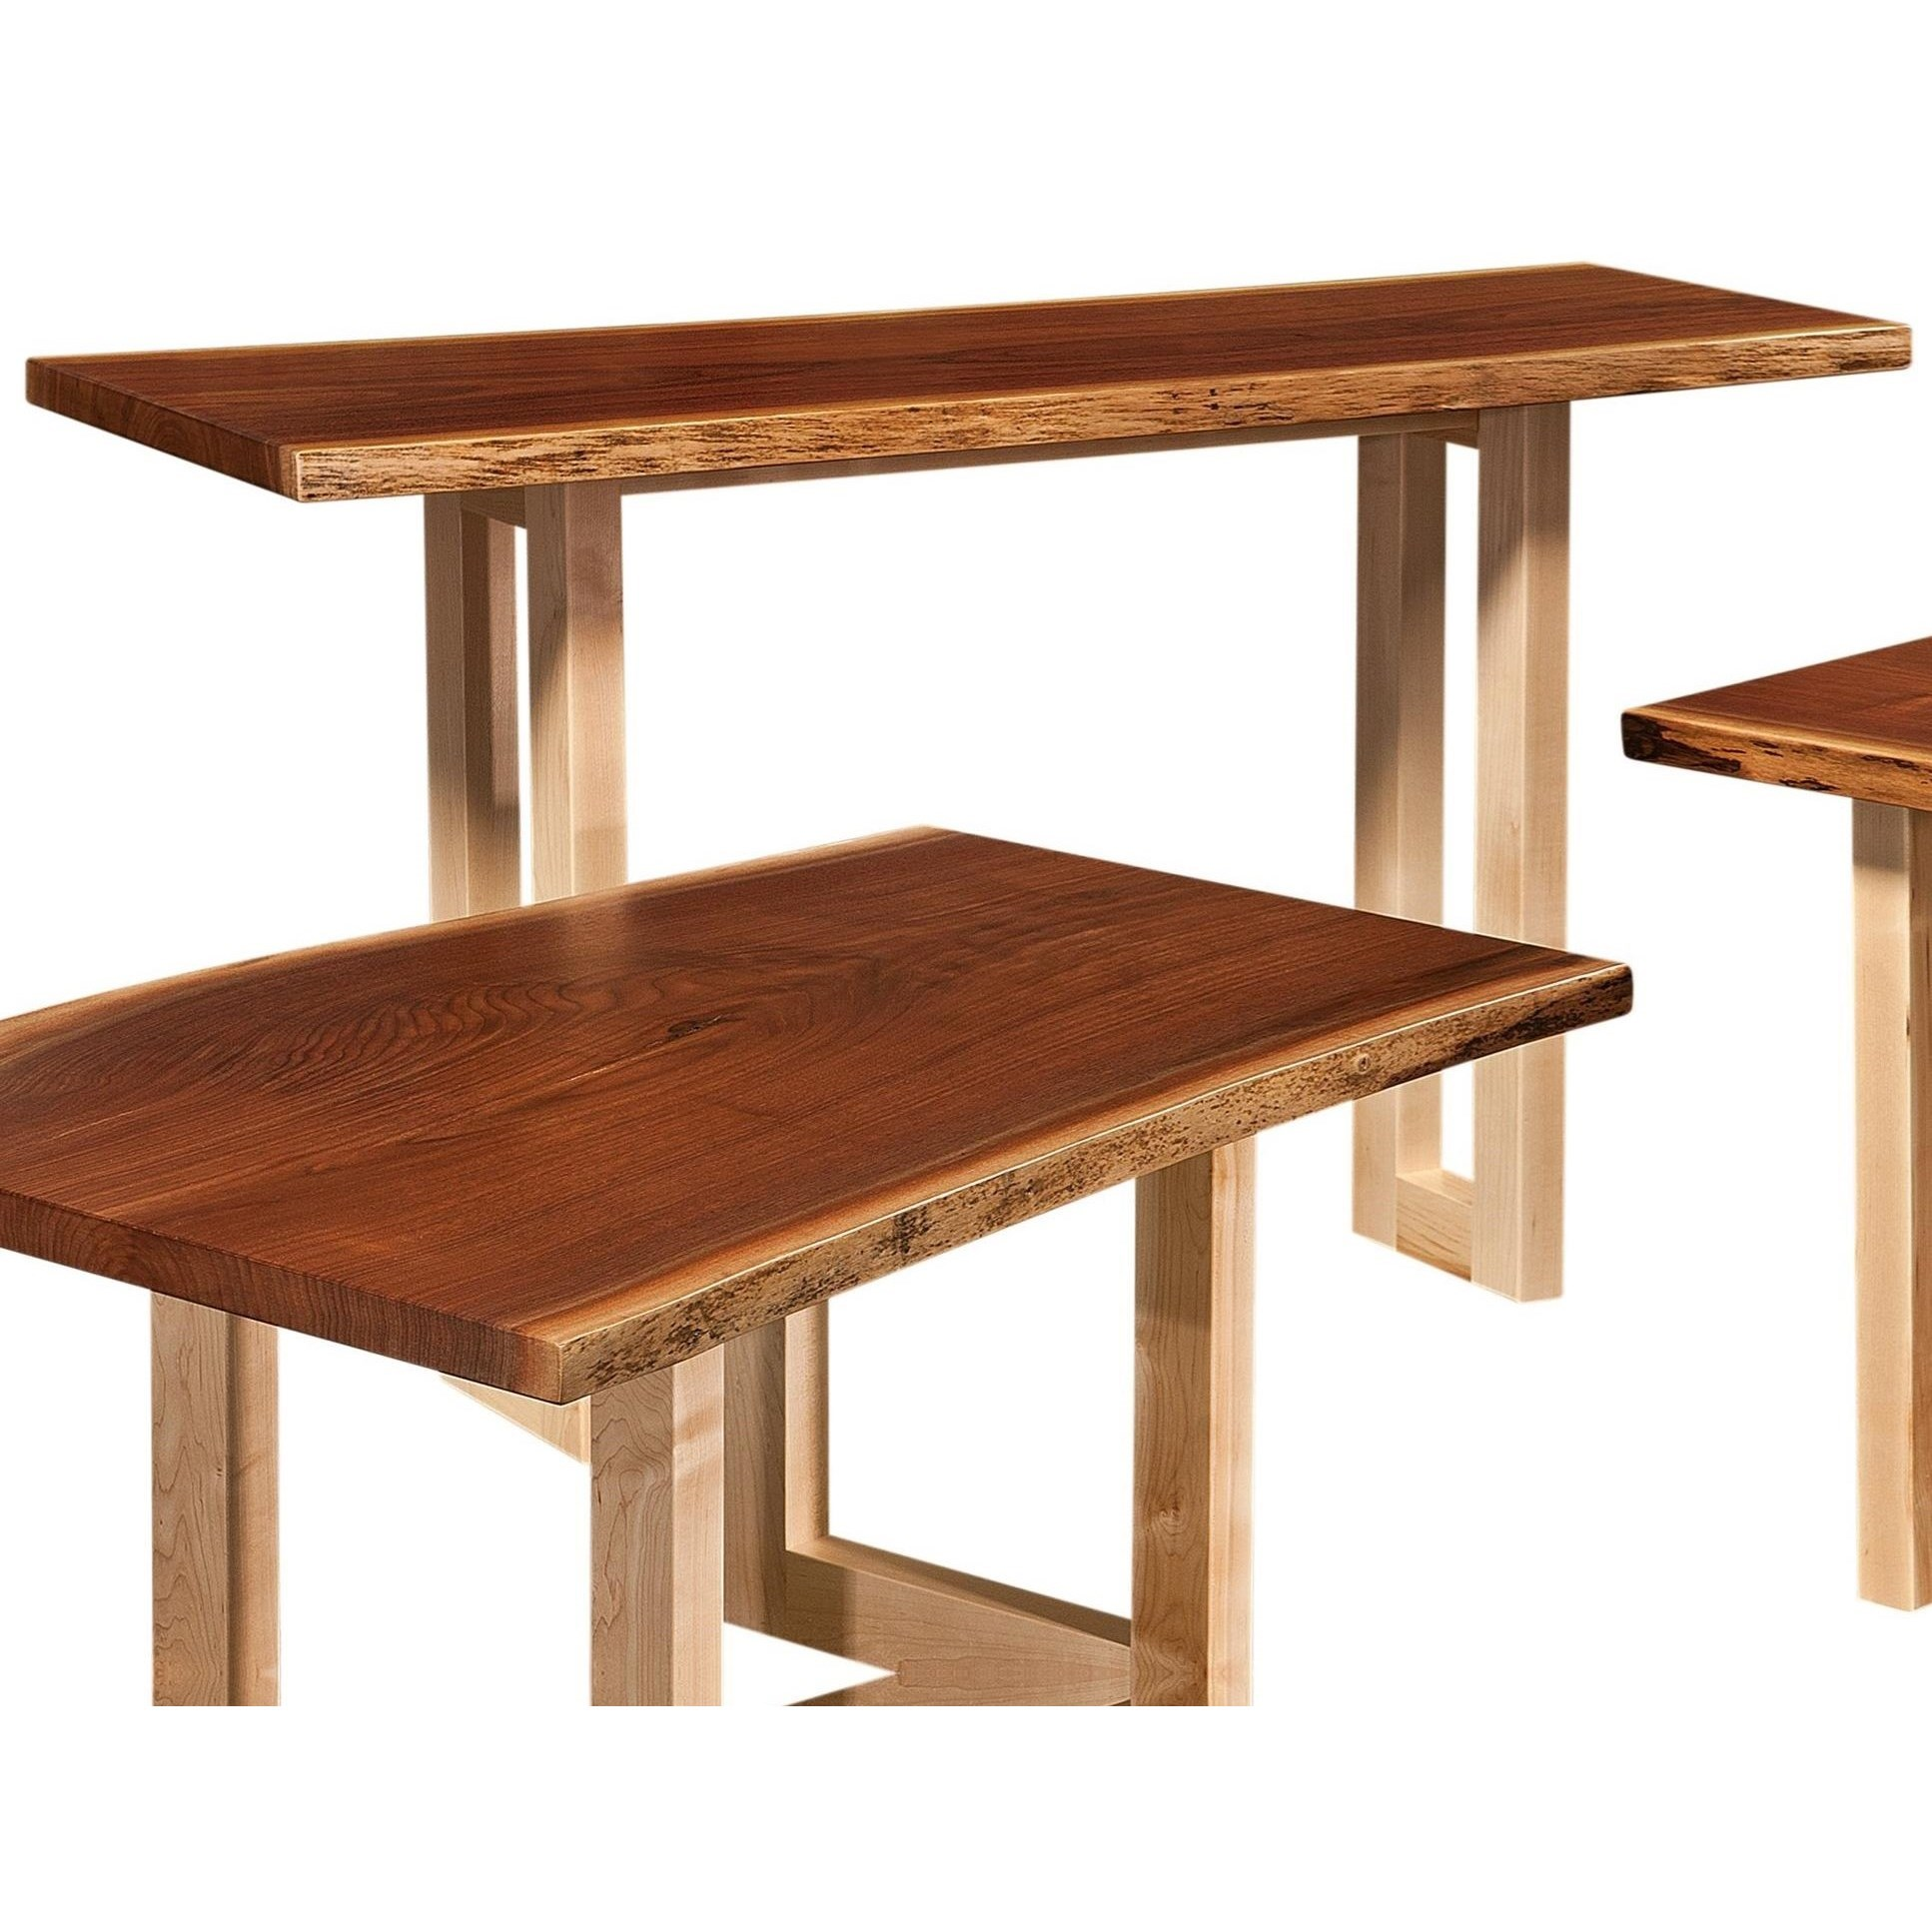 Kalispel Live Edge Sofa Table by Crystal Valley Hardwoods at Saugerties Furniture Mart